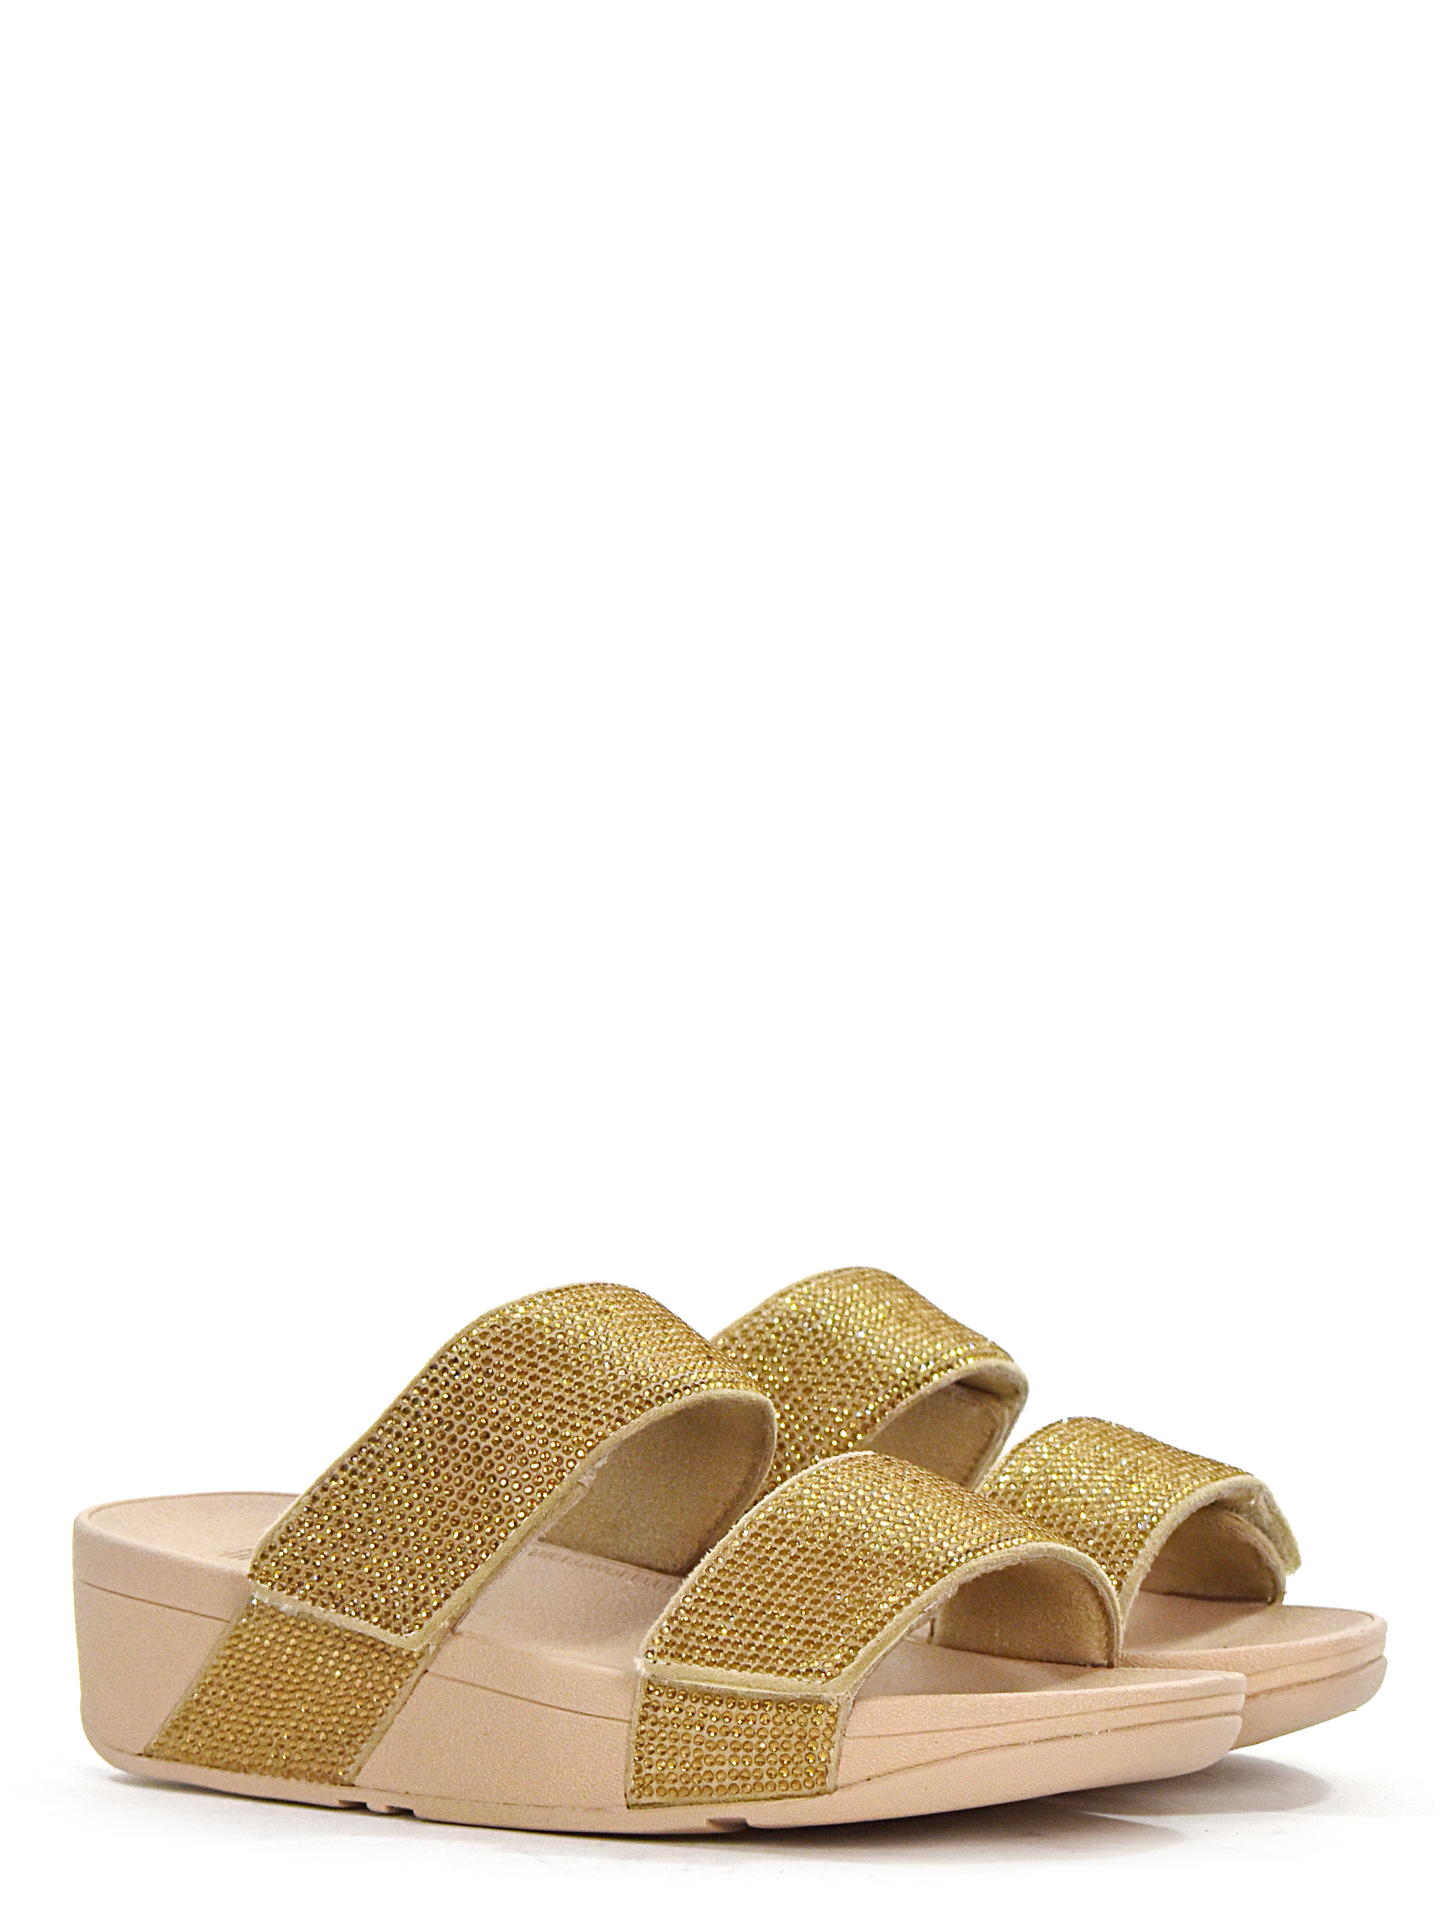 SANDALO BASSO FITFLOP MINACRYSTAL ORO